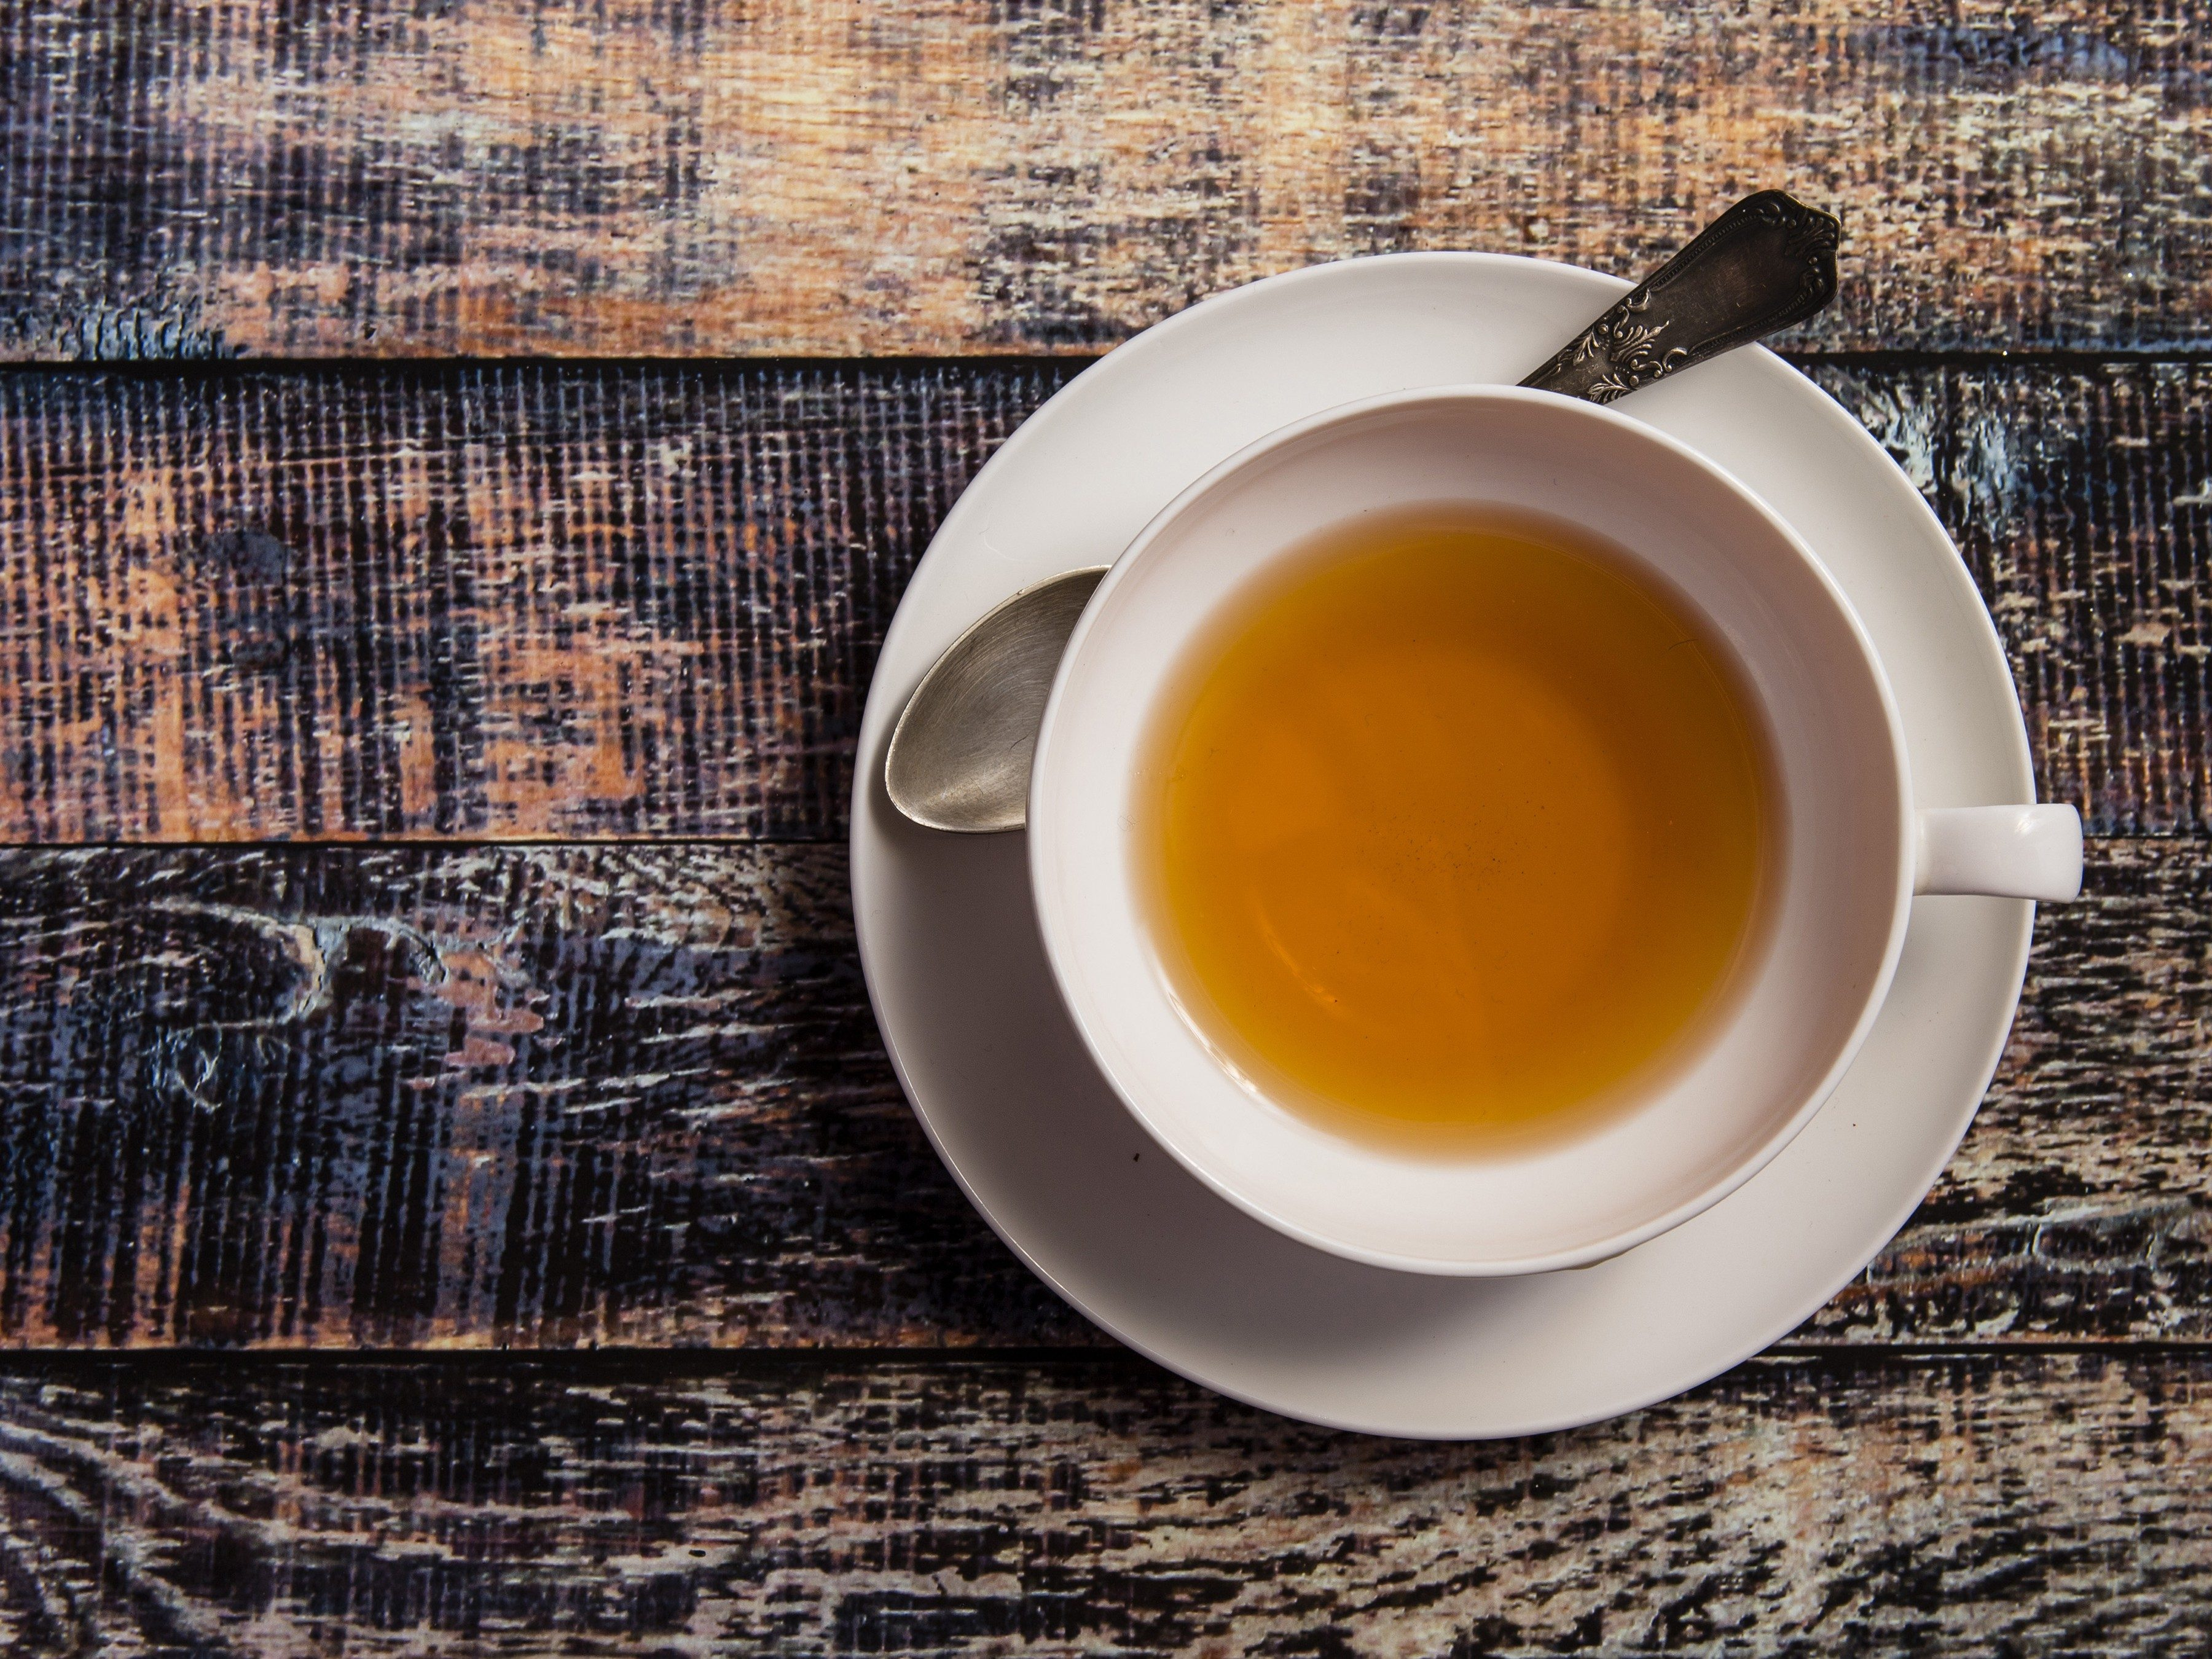 4. Drink a Cup of Tea Every Day